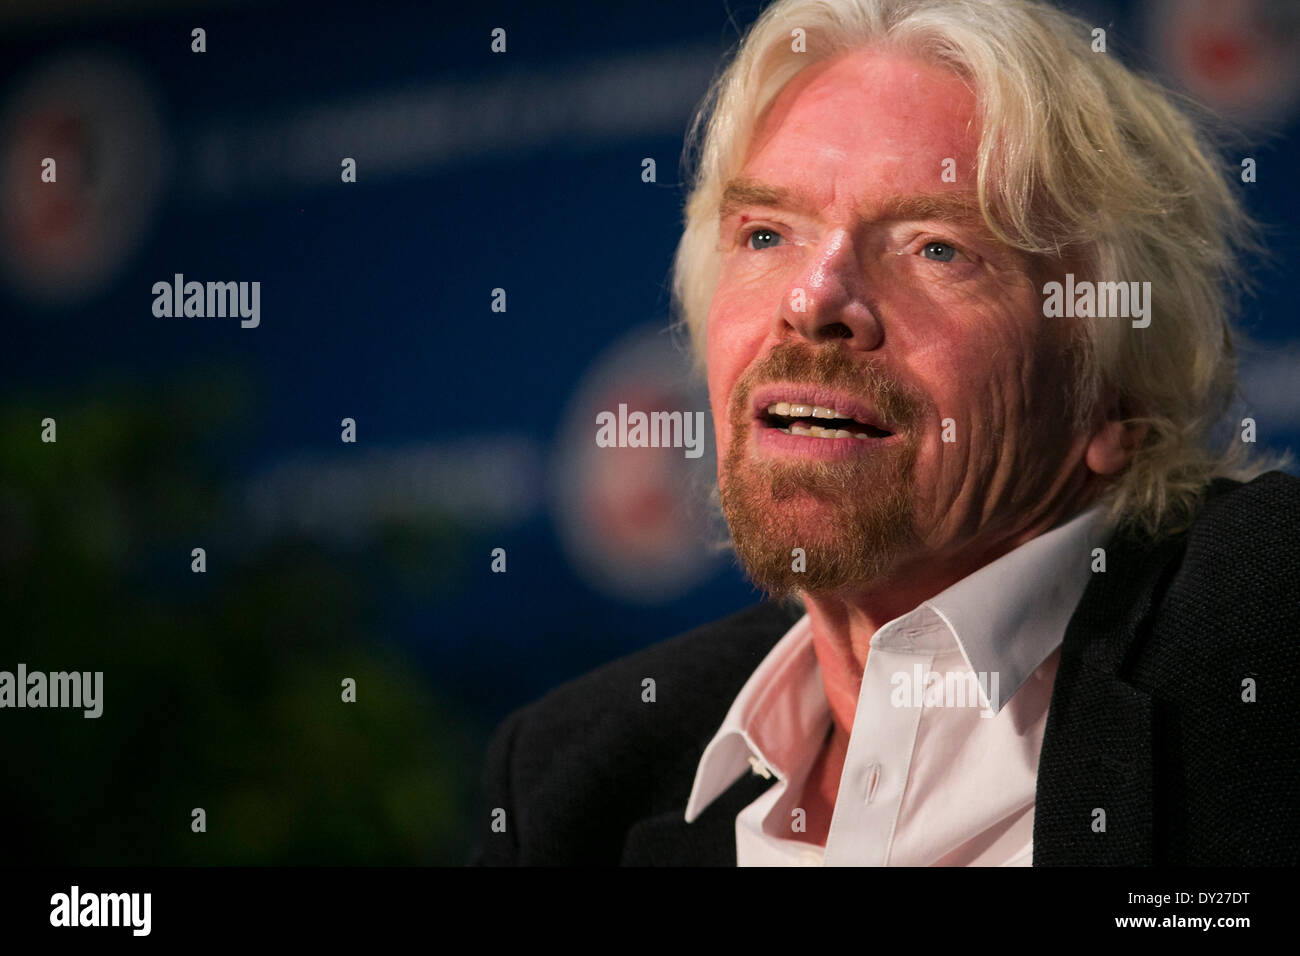 Washington DC, USA . 03rd Apr, 2014. Sir Richard Branson, Founder, Virgin Group, speaks at the U.S. Chamber Of Commerce Stock Photo